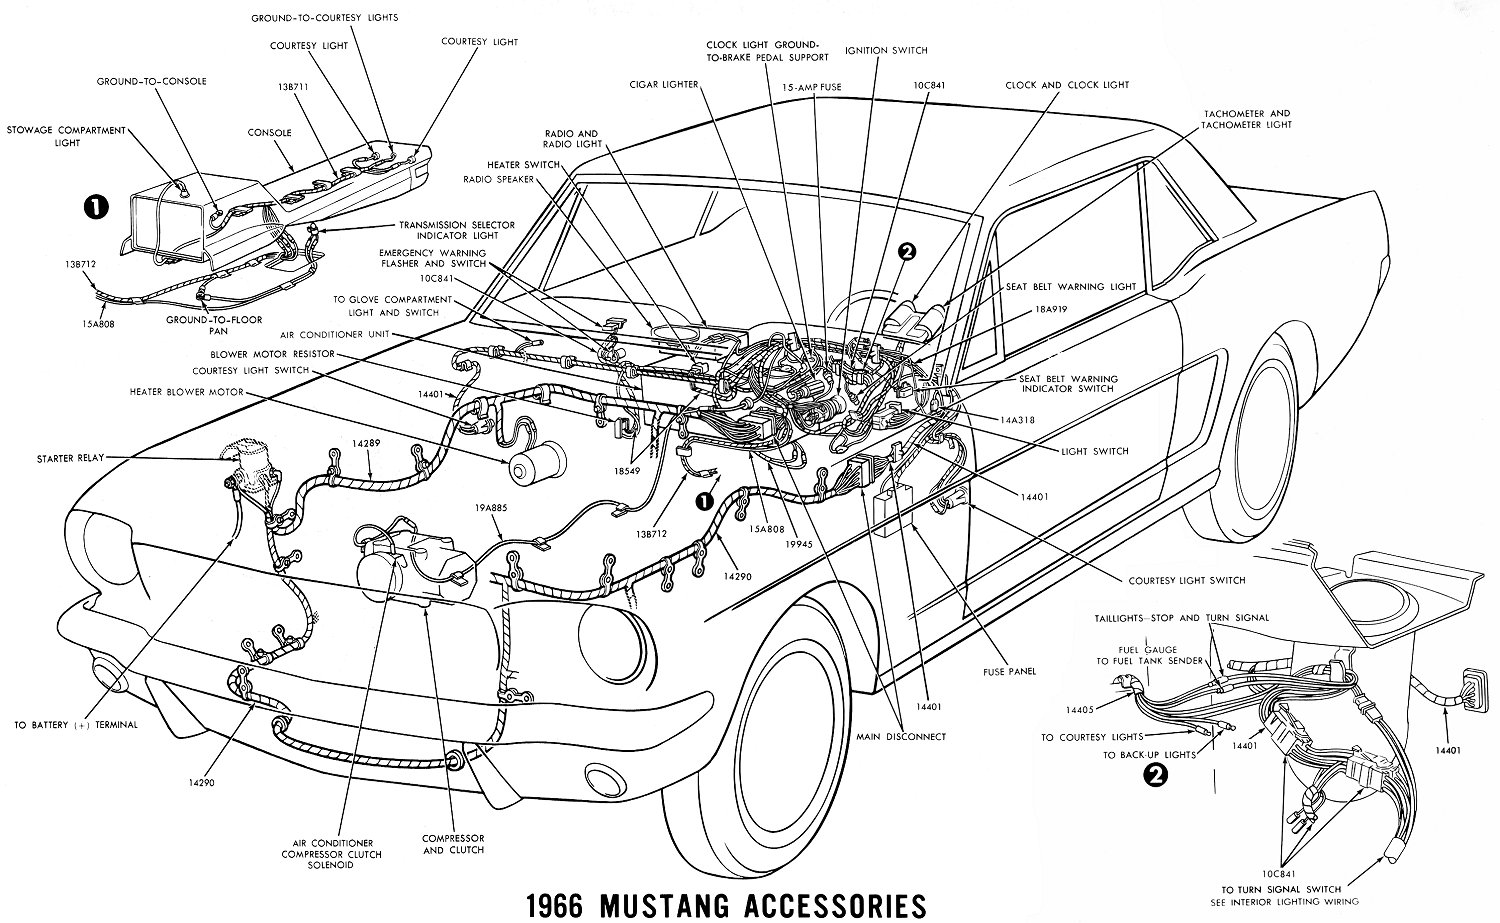 1966 Mustang Wiring Diagrams Average Joe Restoration Lighting Control Panel Schematic Diagram Sm66acc Accessories